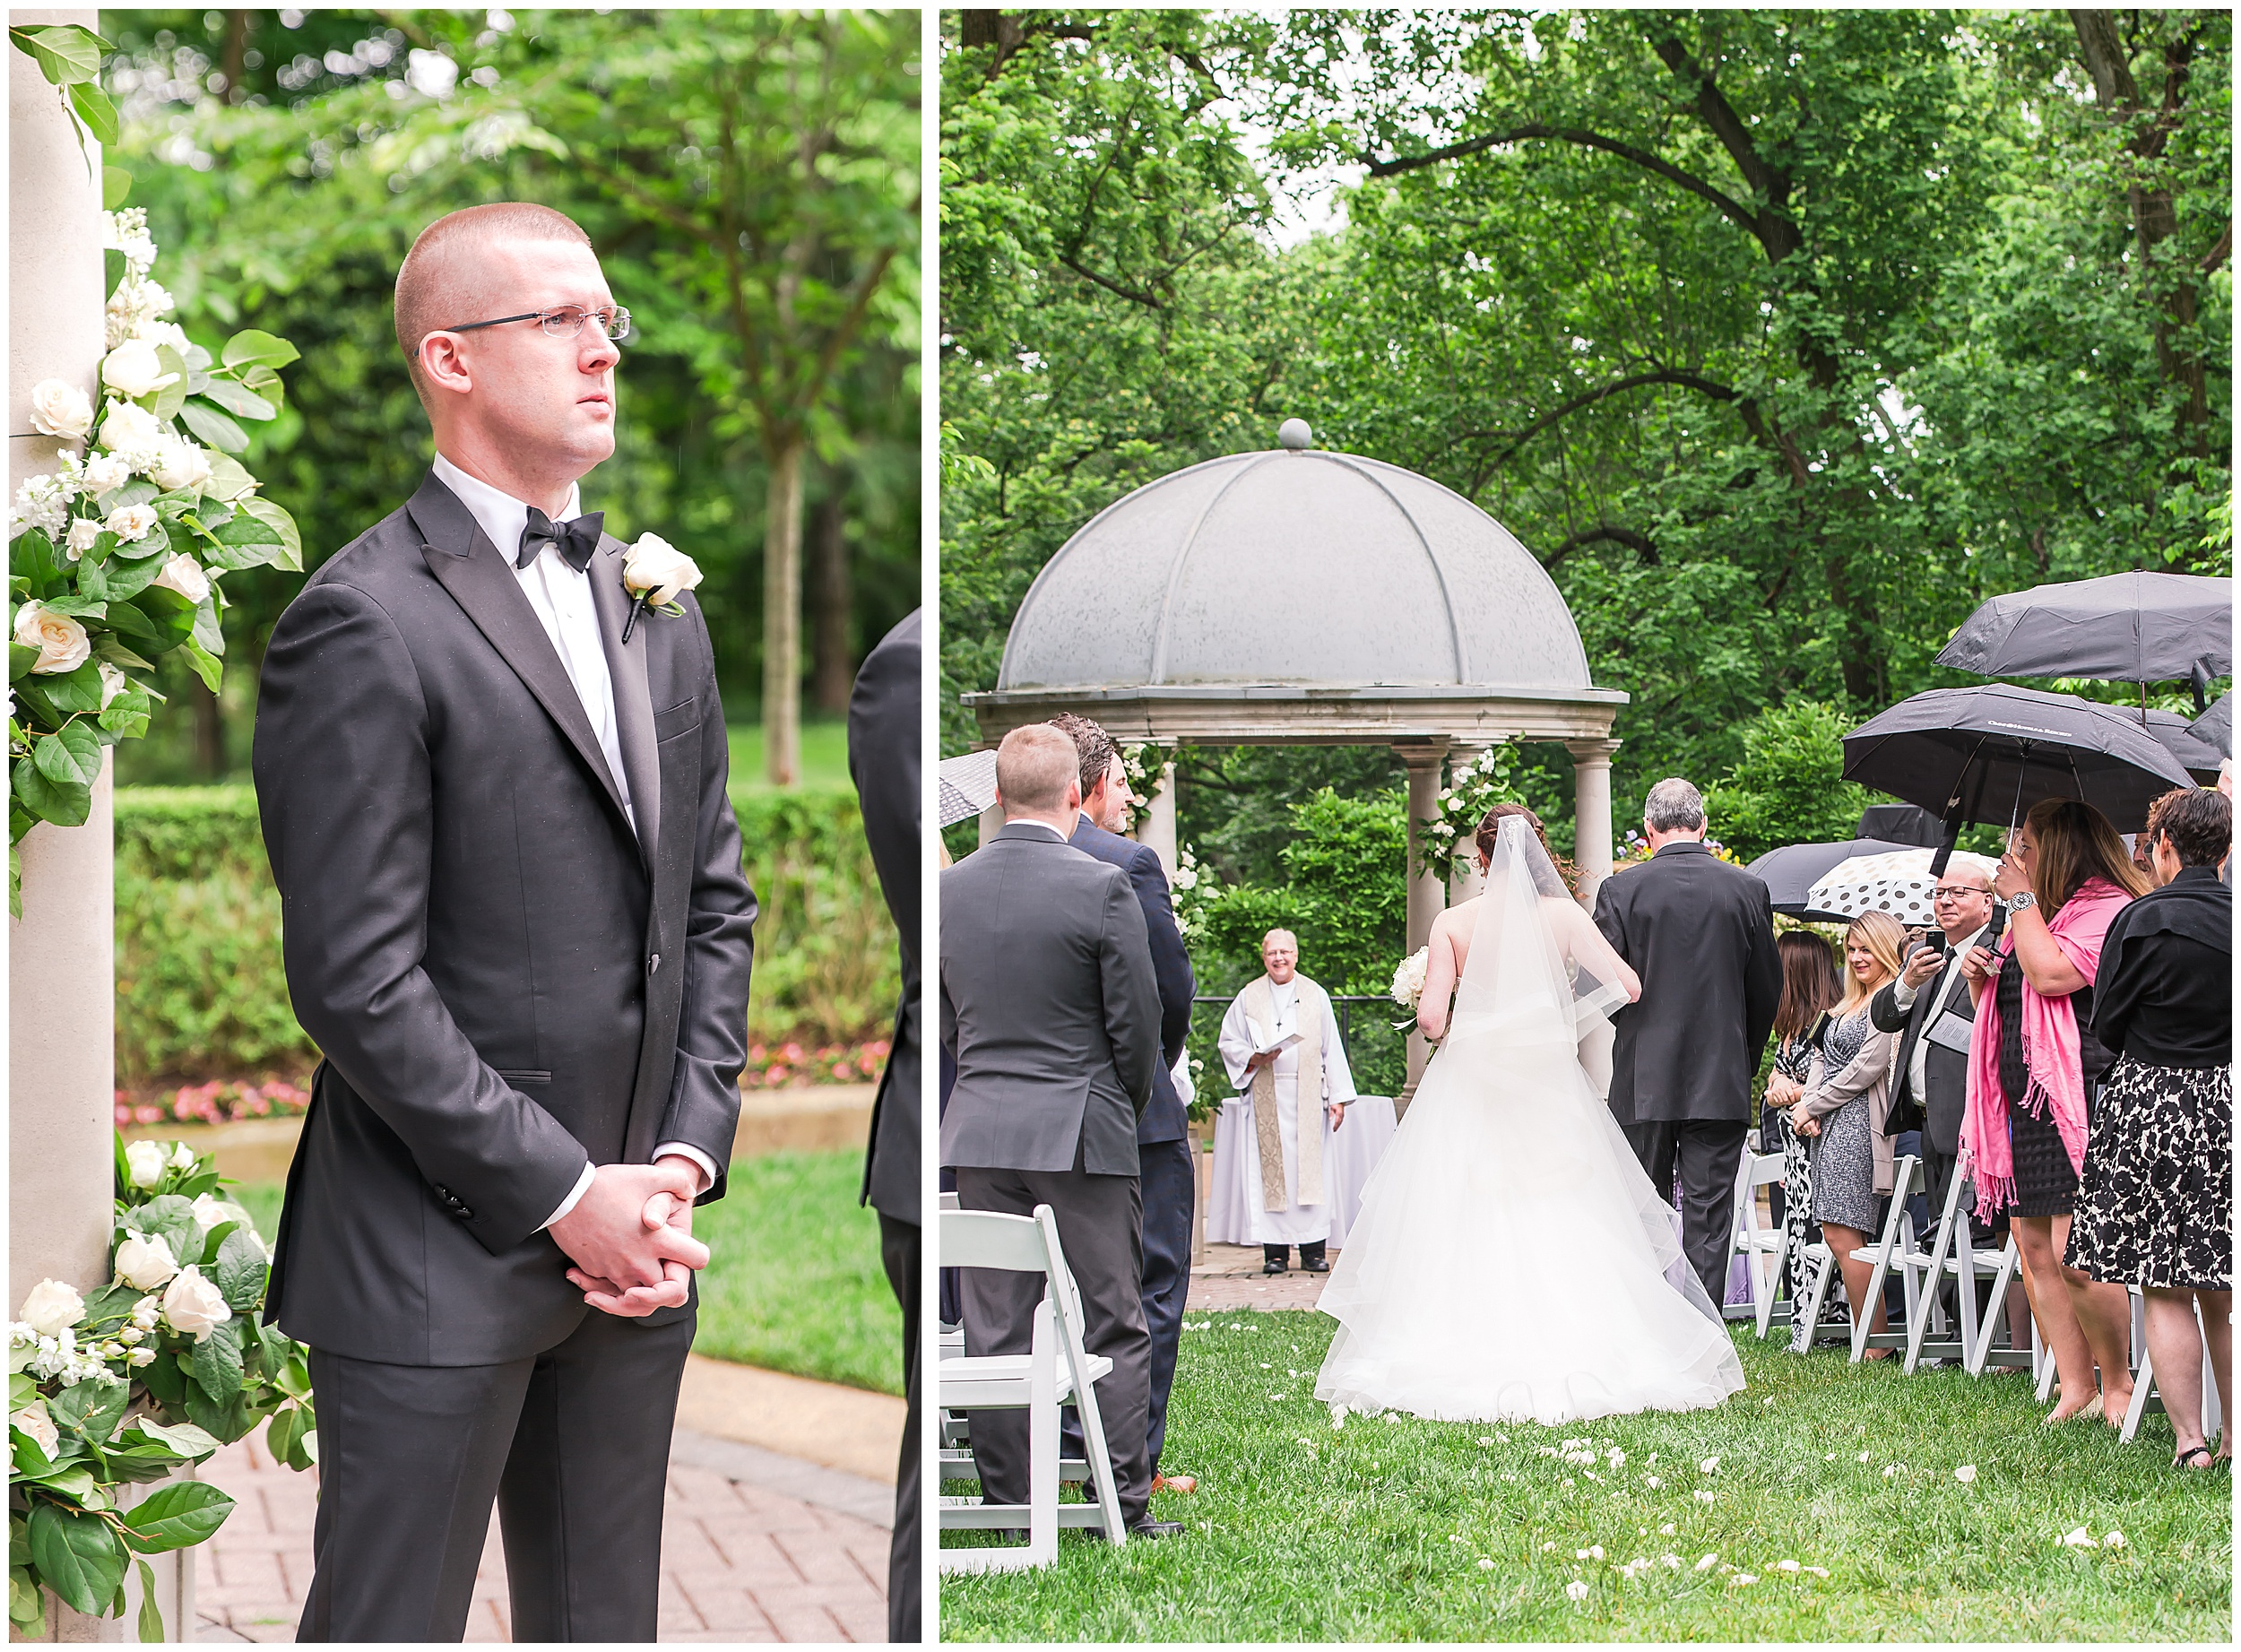 Irish Springtime Omni Shoreham Wedding first-look-down-aisle-groom-bride